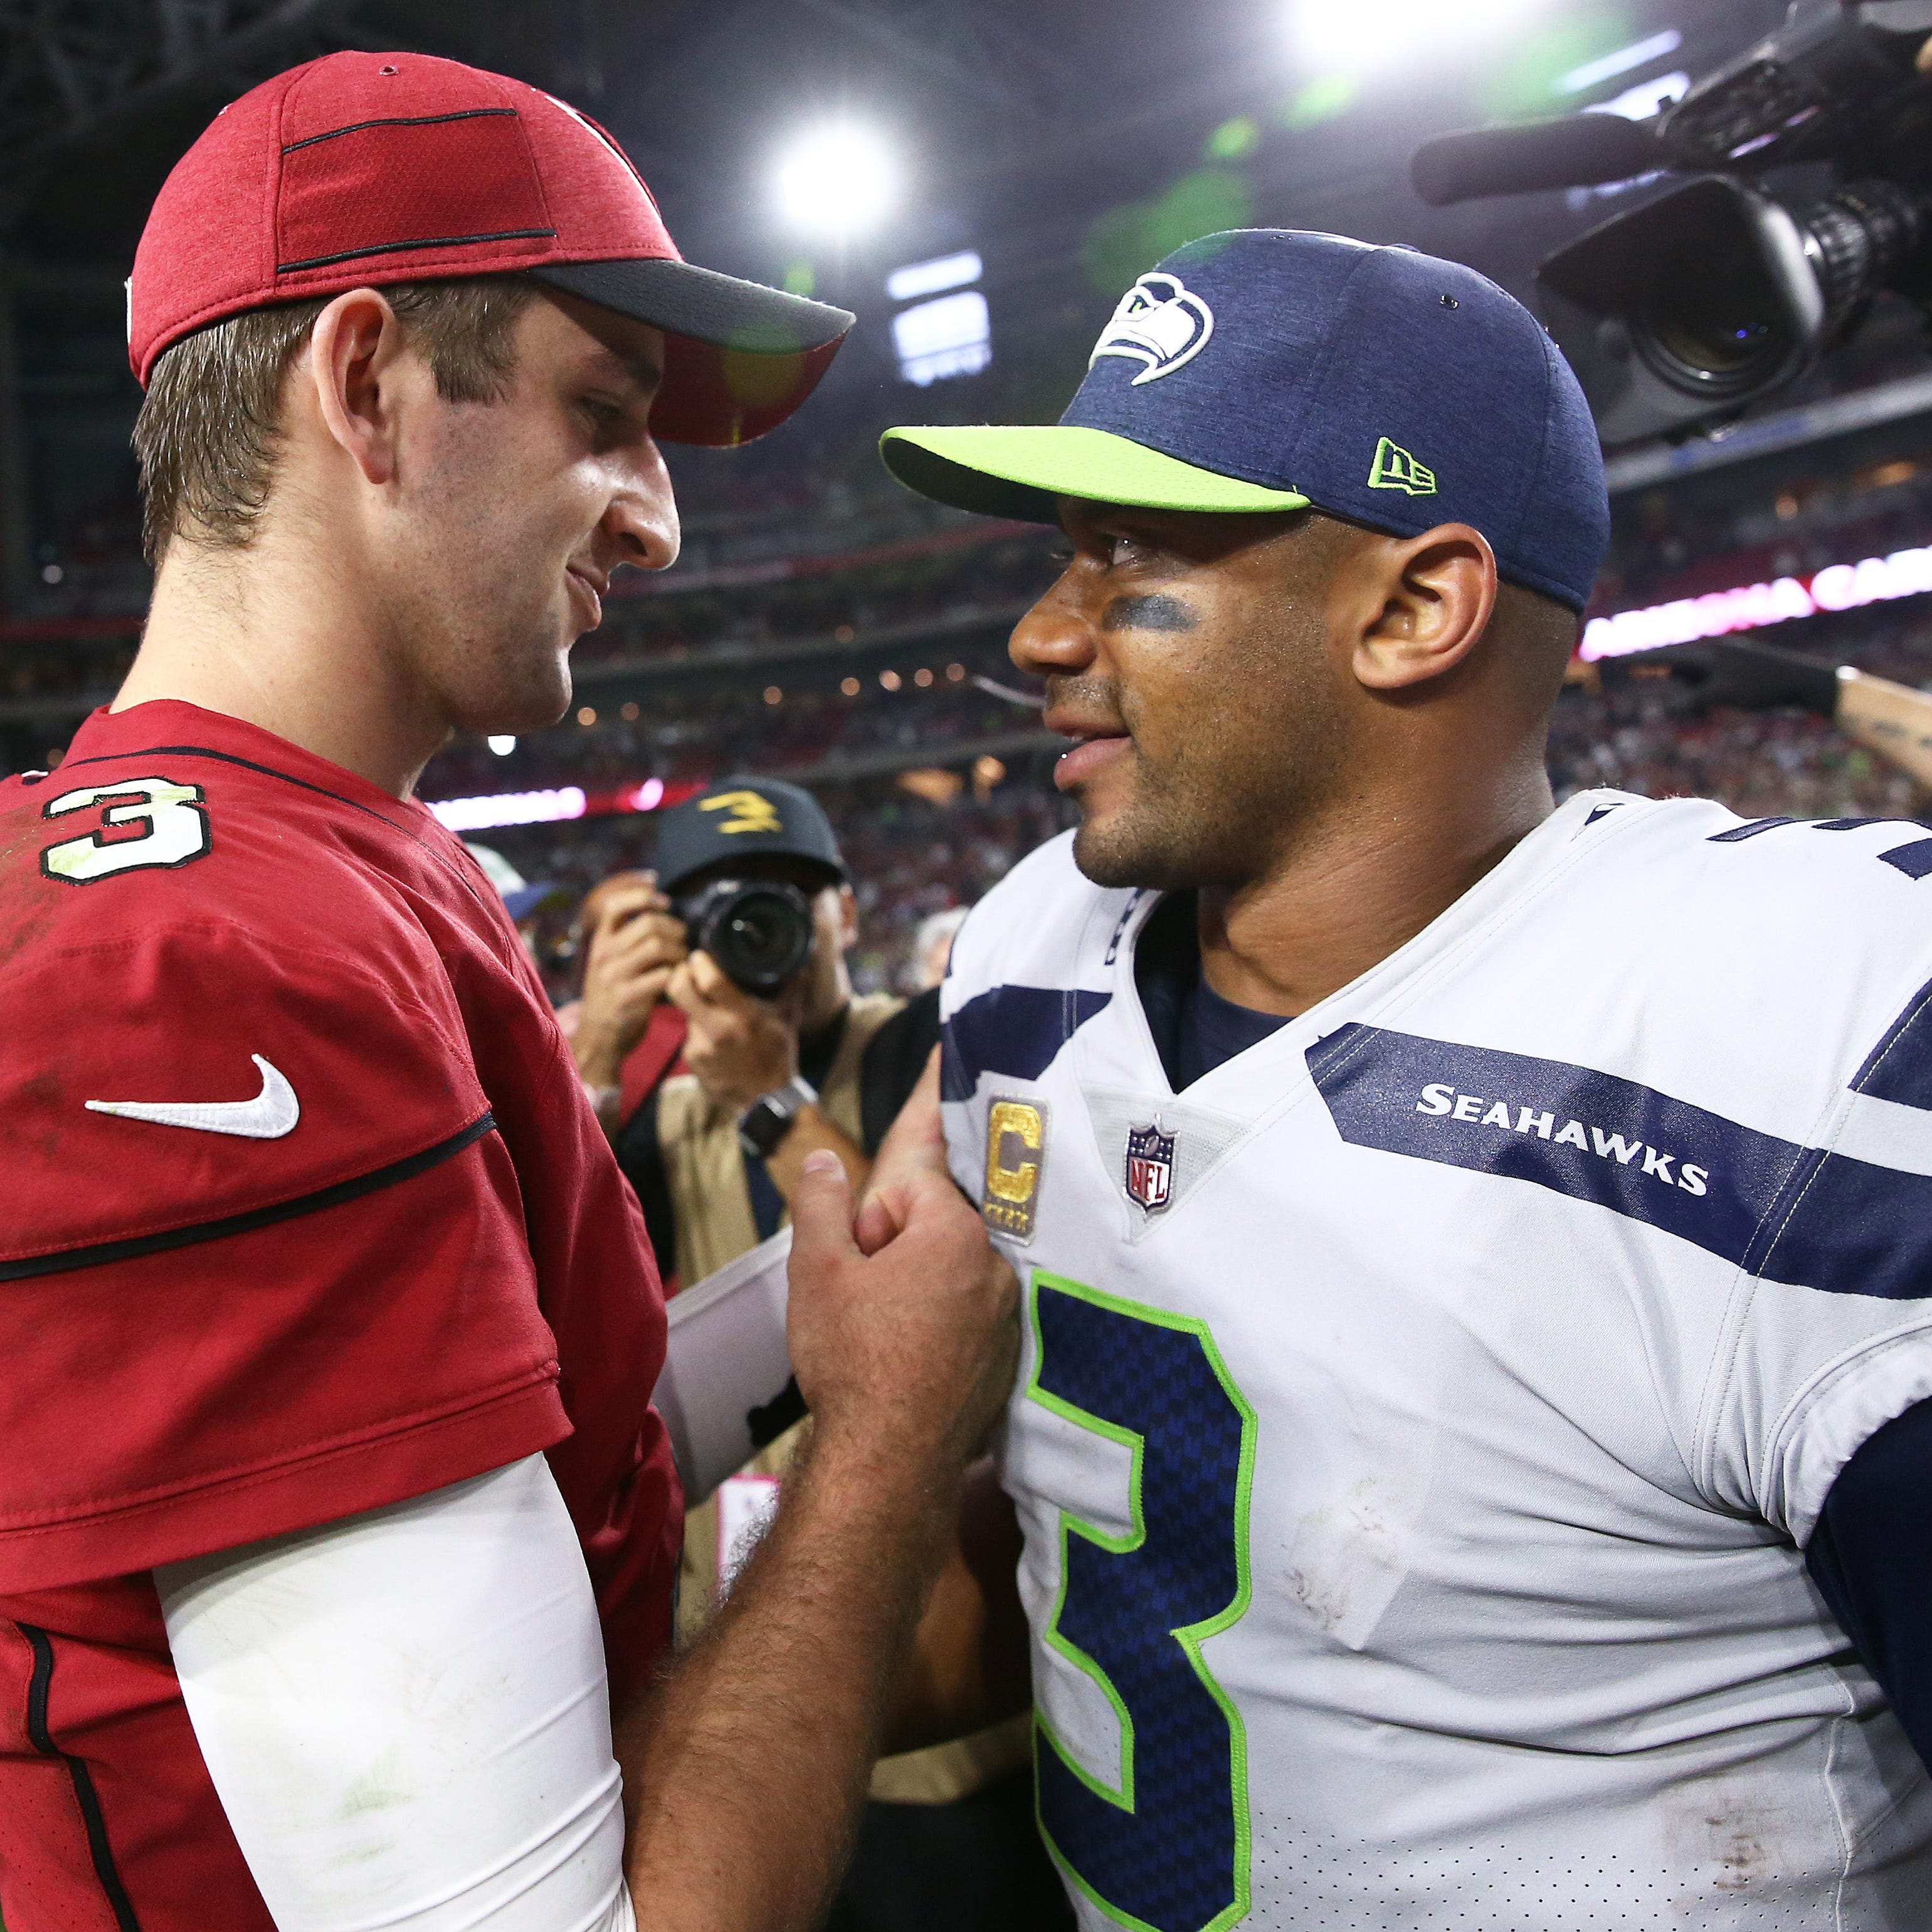 Russell Wilson trade rumors: Seahawks quarterback speculation involves Giants, Cardinals